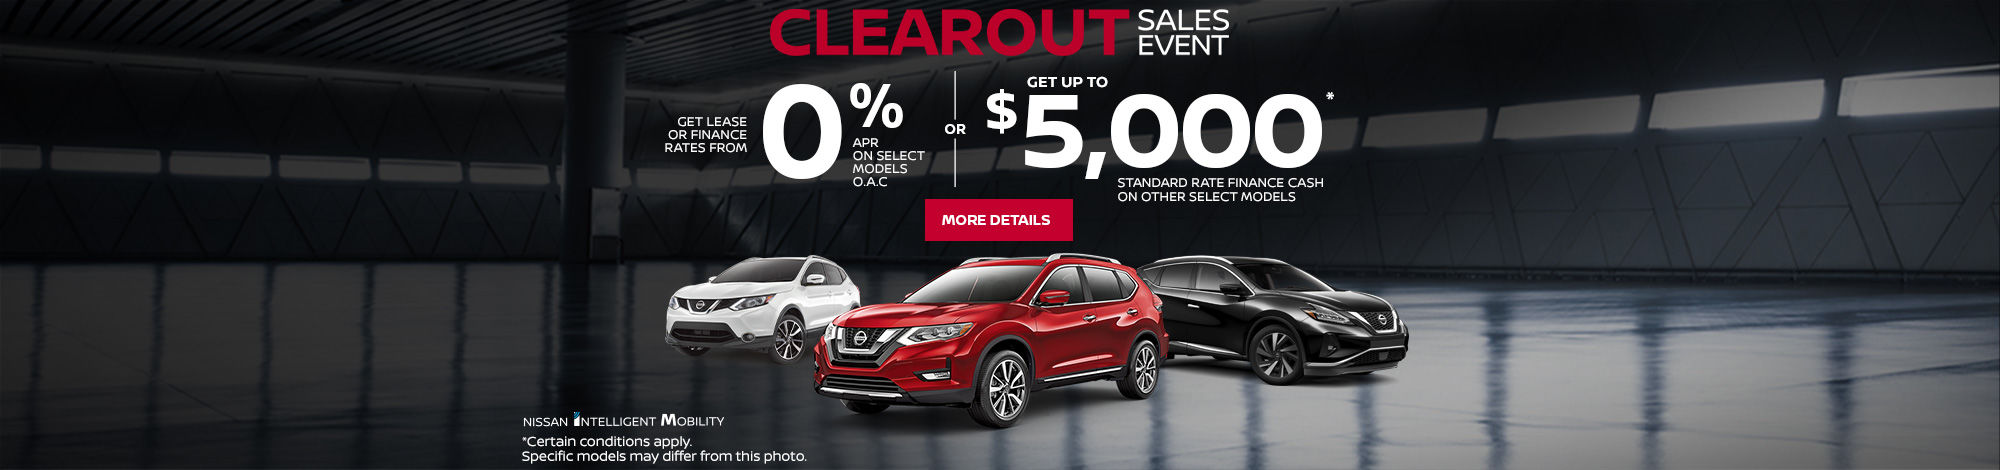 Nissan Clearout Sales Event